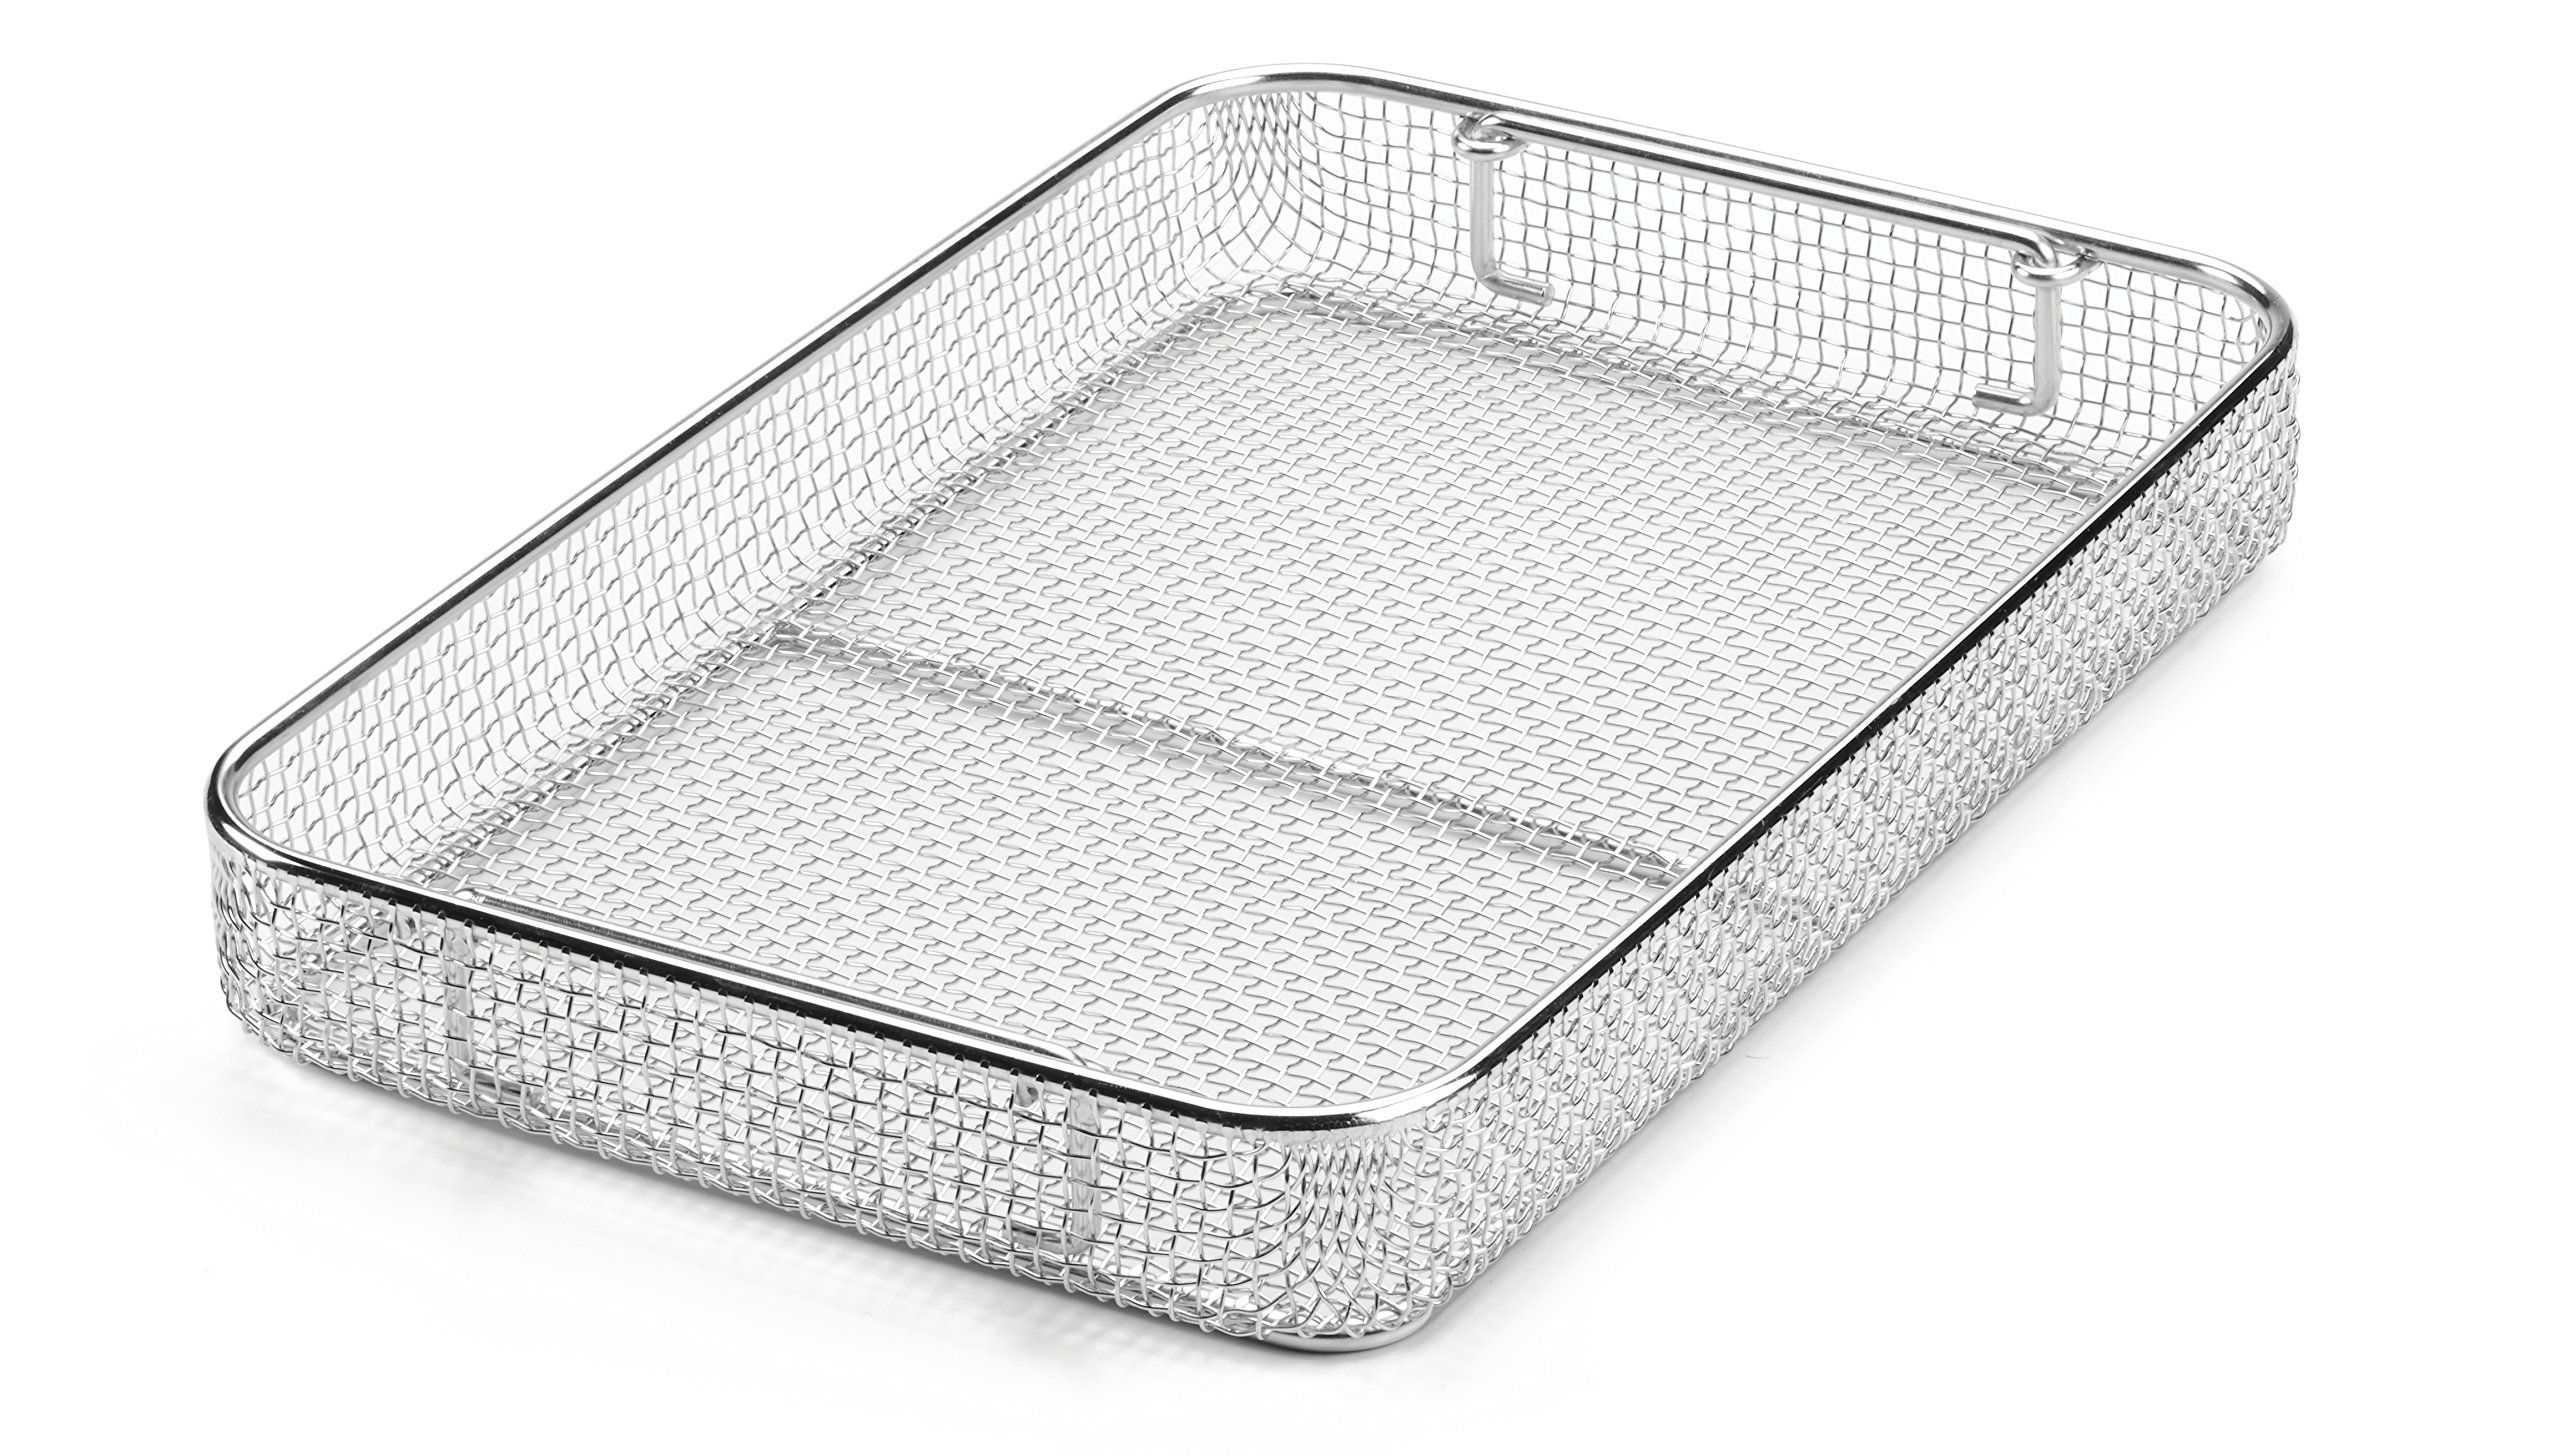 Key Surgical MT-8050 Mesh Tray with Drop